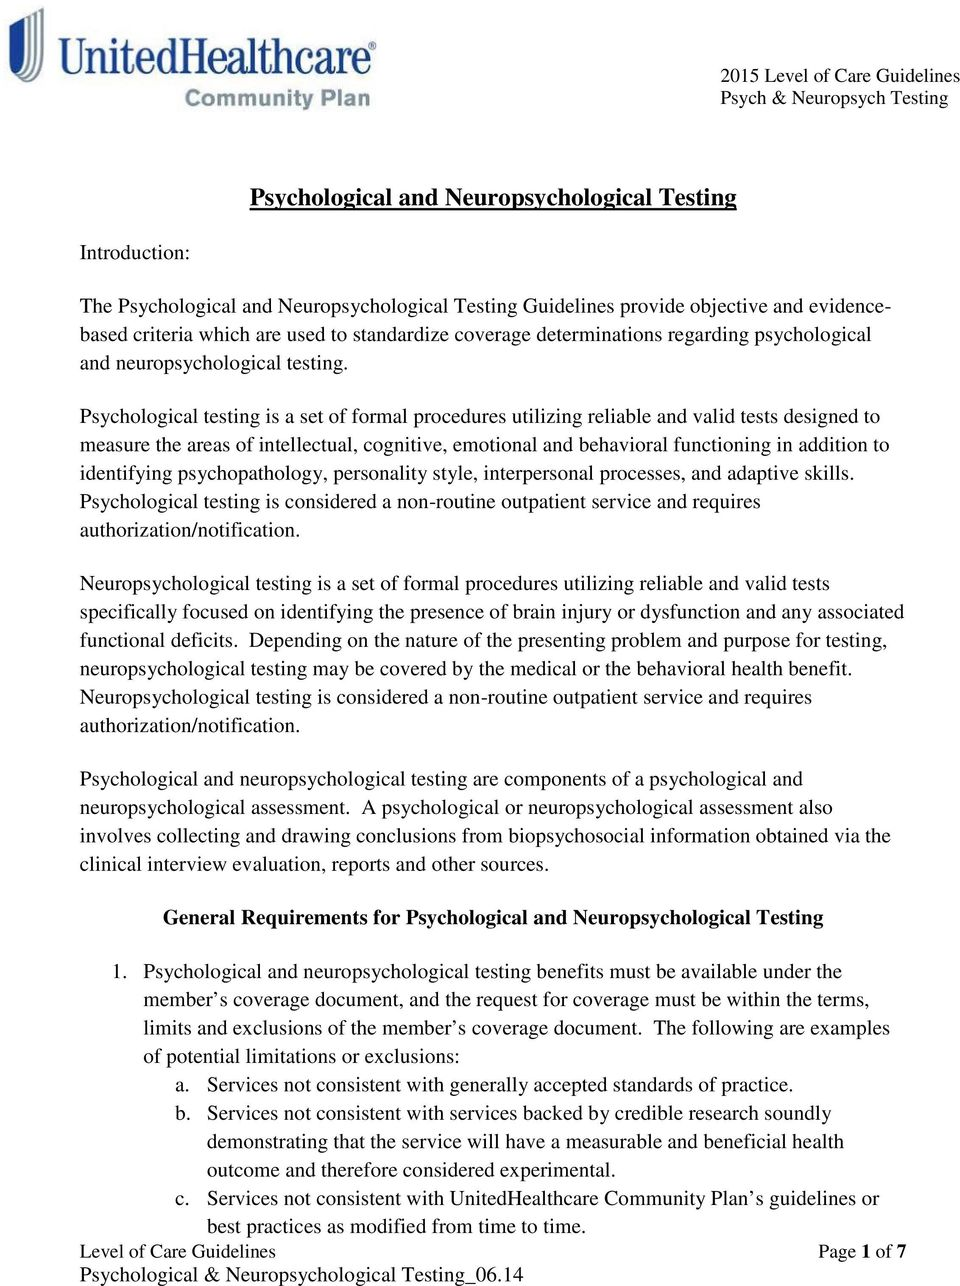 Psychological and Neuropsychological Testing - PDF